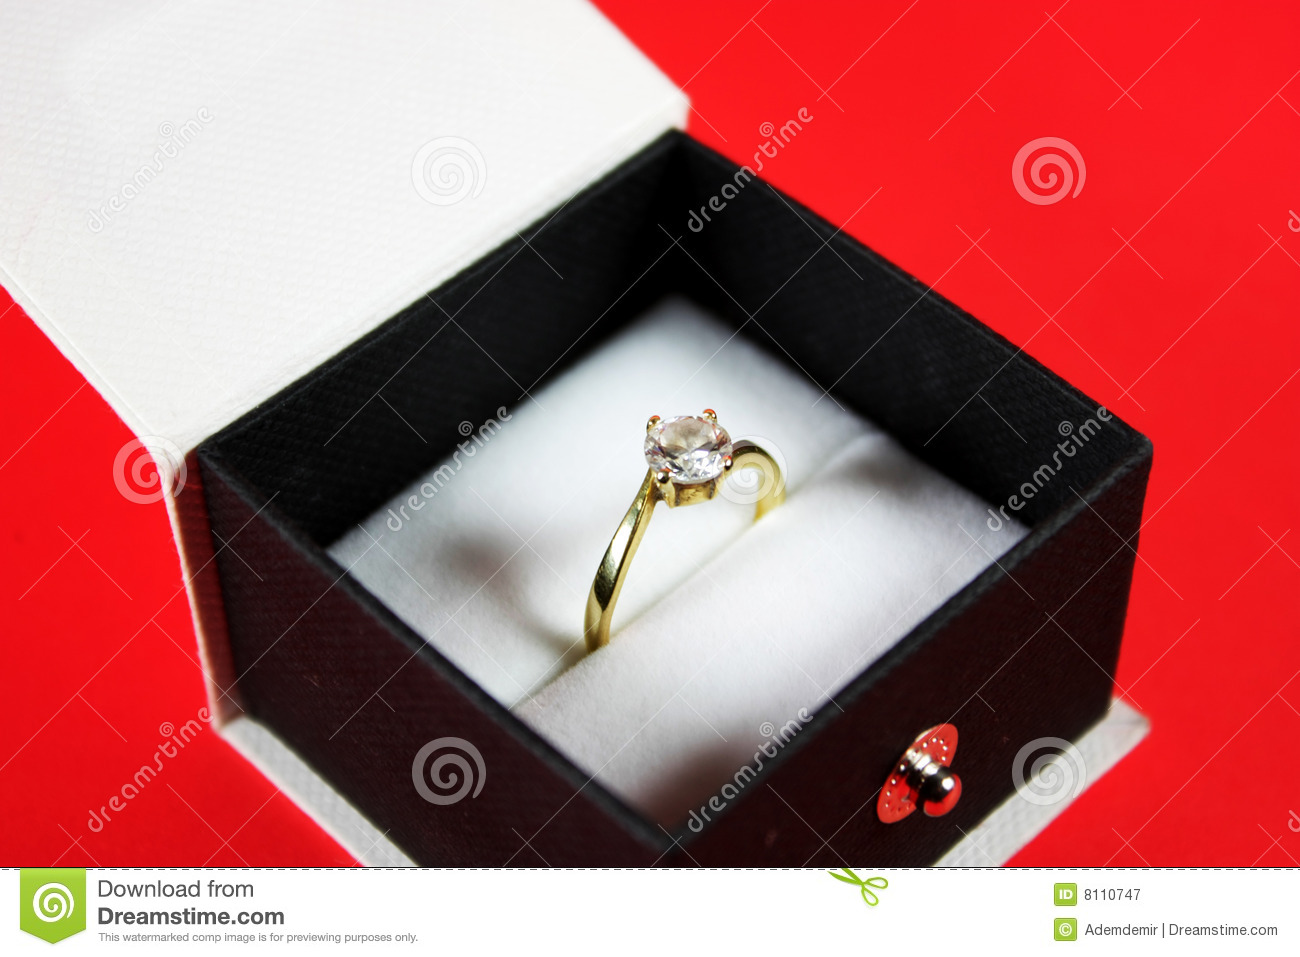 803be9693 Diamond Ring In A Black Jewelry Box Stock Image - Image of life ...